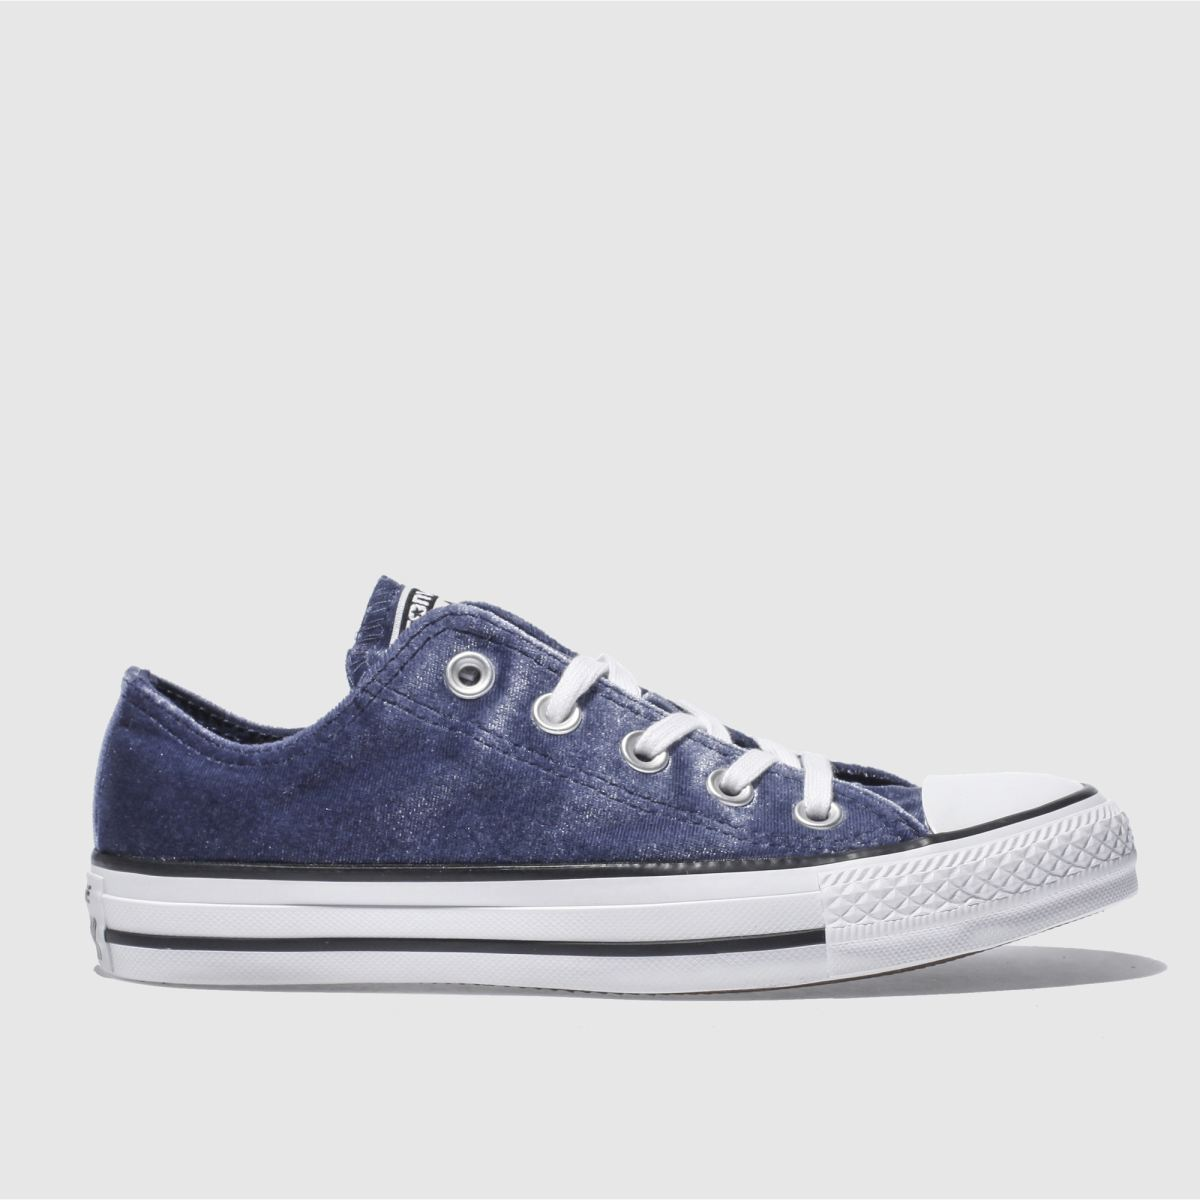 converse navy & white all star velvet ox trainers